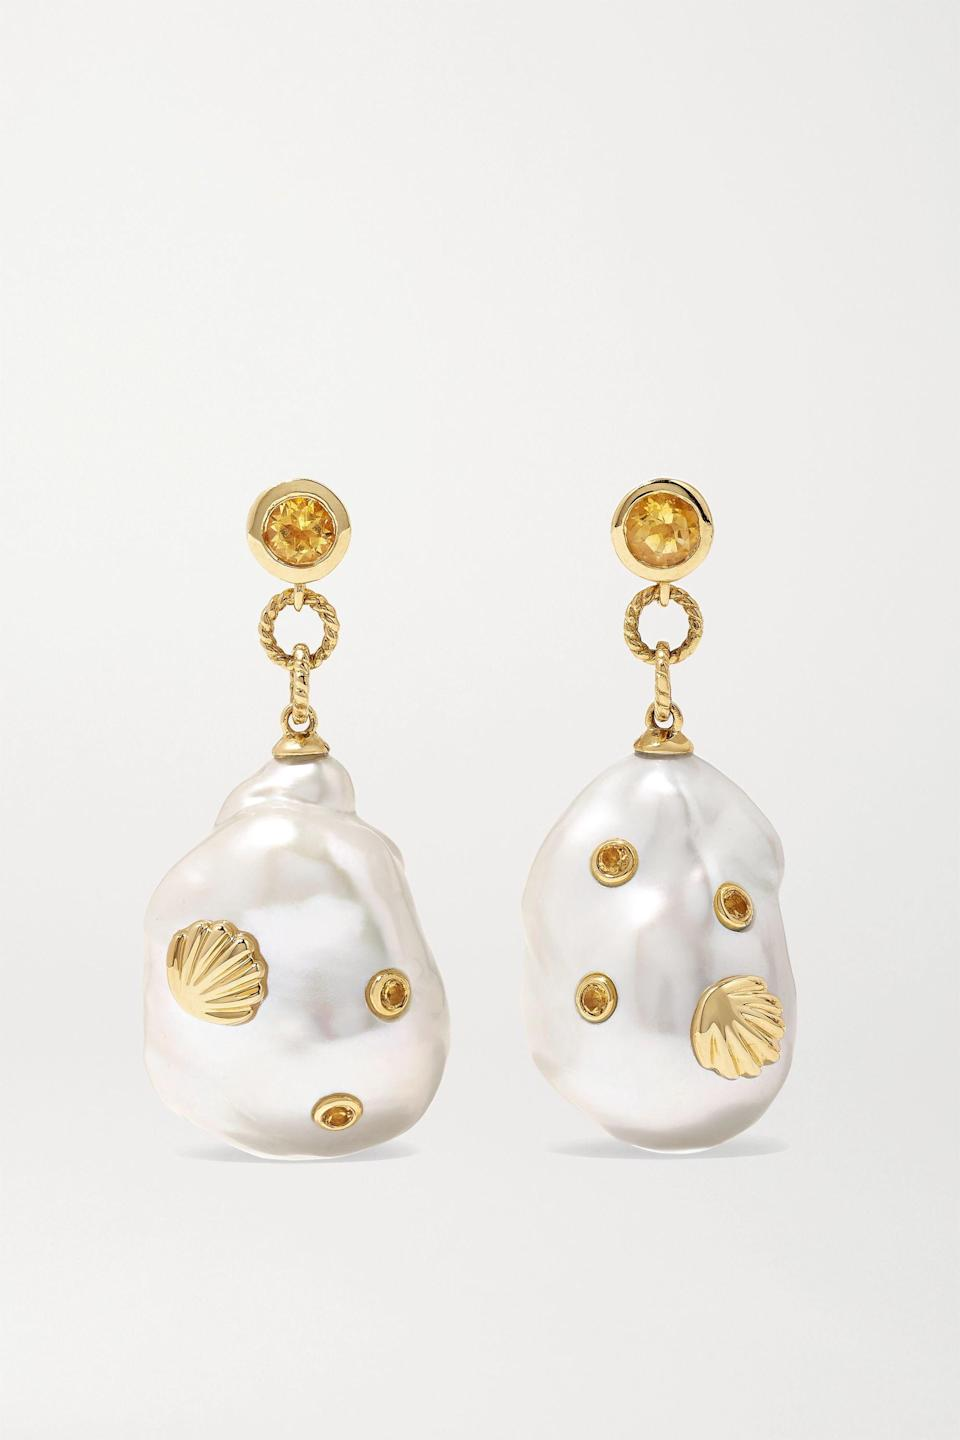 """<h2>November: Citrine</h2><br><strong>The Signs: Scorpio & Sagittarius<br></strong><br>""""Named for the old French word <em>citrin</em>, meaning lemon, [citrine] has been popular for thousands of years and revered for its rarity,"""" writes Oldershaw. It's a less-common cousin of amethyst, usually found in an autumnal golden orange hue. The loyal Scorpio or ingratiating Sagittarius in your life will love to bask in this gem's inviting glow.<br><br><strong>Yvonne Léon</strong> 9-karat gold, pearl and citrine earrings, $, available at <a href=""""https://go.skimresources.com/?id=30283X879131&url=https%3A%2F%2Fwww.net-a-porter.com%2Fen-us%2Fshop%2Fproduct%2Fyvonne-leon%2F9-karat-gold-pearl-and-citrine-earrings%2F1281311"""" rel=""""nofollow noopener"""" target=""""_blank"""" data-ylk=""""slk:Net-A-Porter"""" class=""""link rapid-noclick-resp"""">Net-A-Porter</a>"""